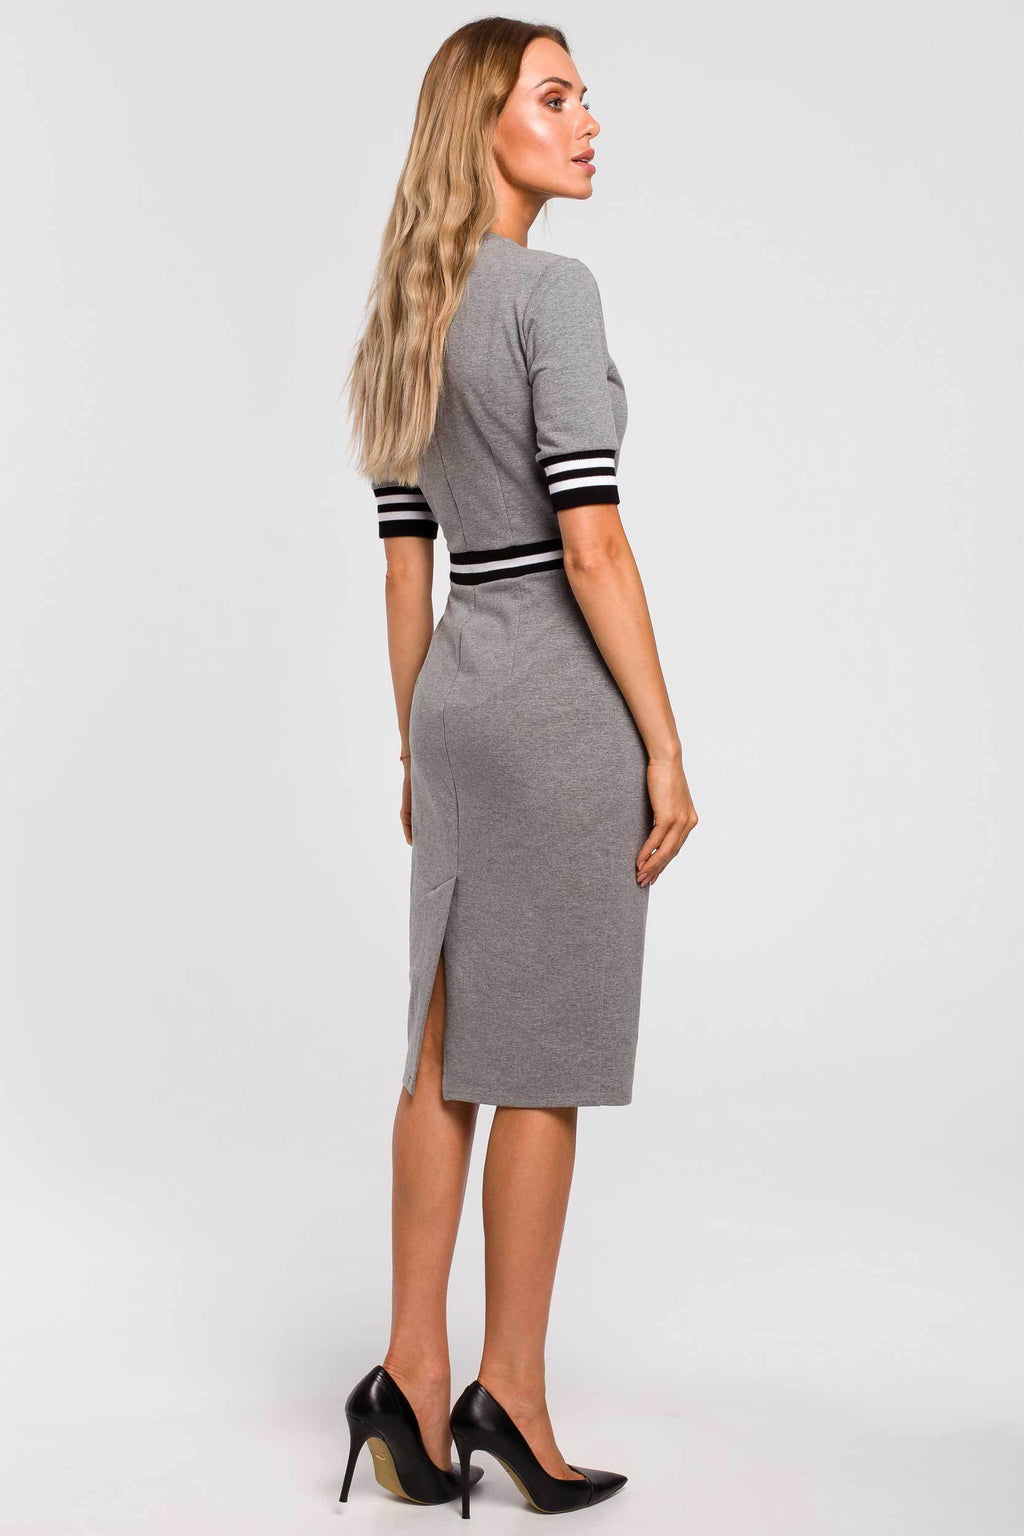 Grey Cotton Pencil Dress With Stripe Ribbed Details - So Chic Boutique